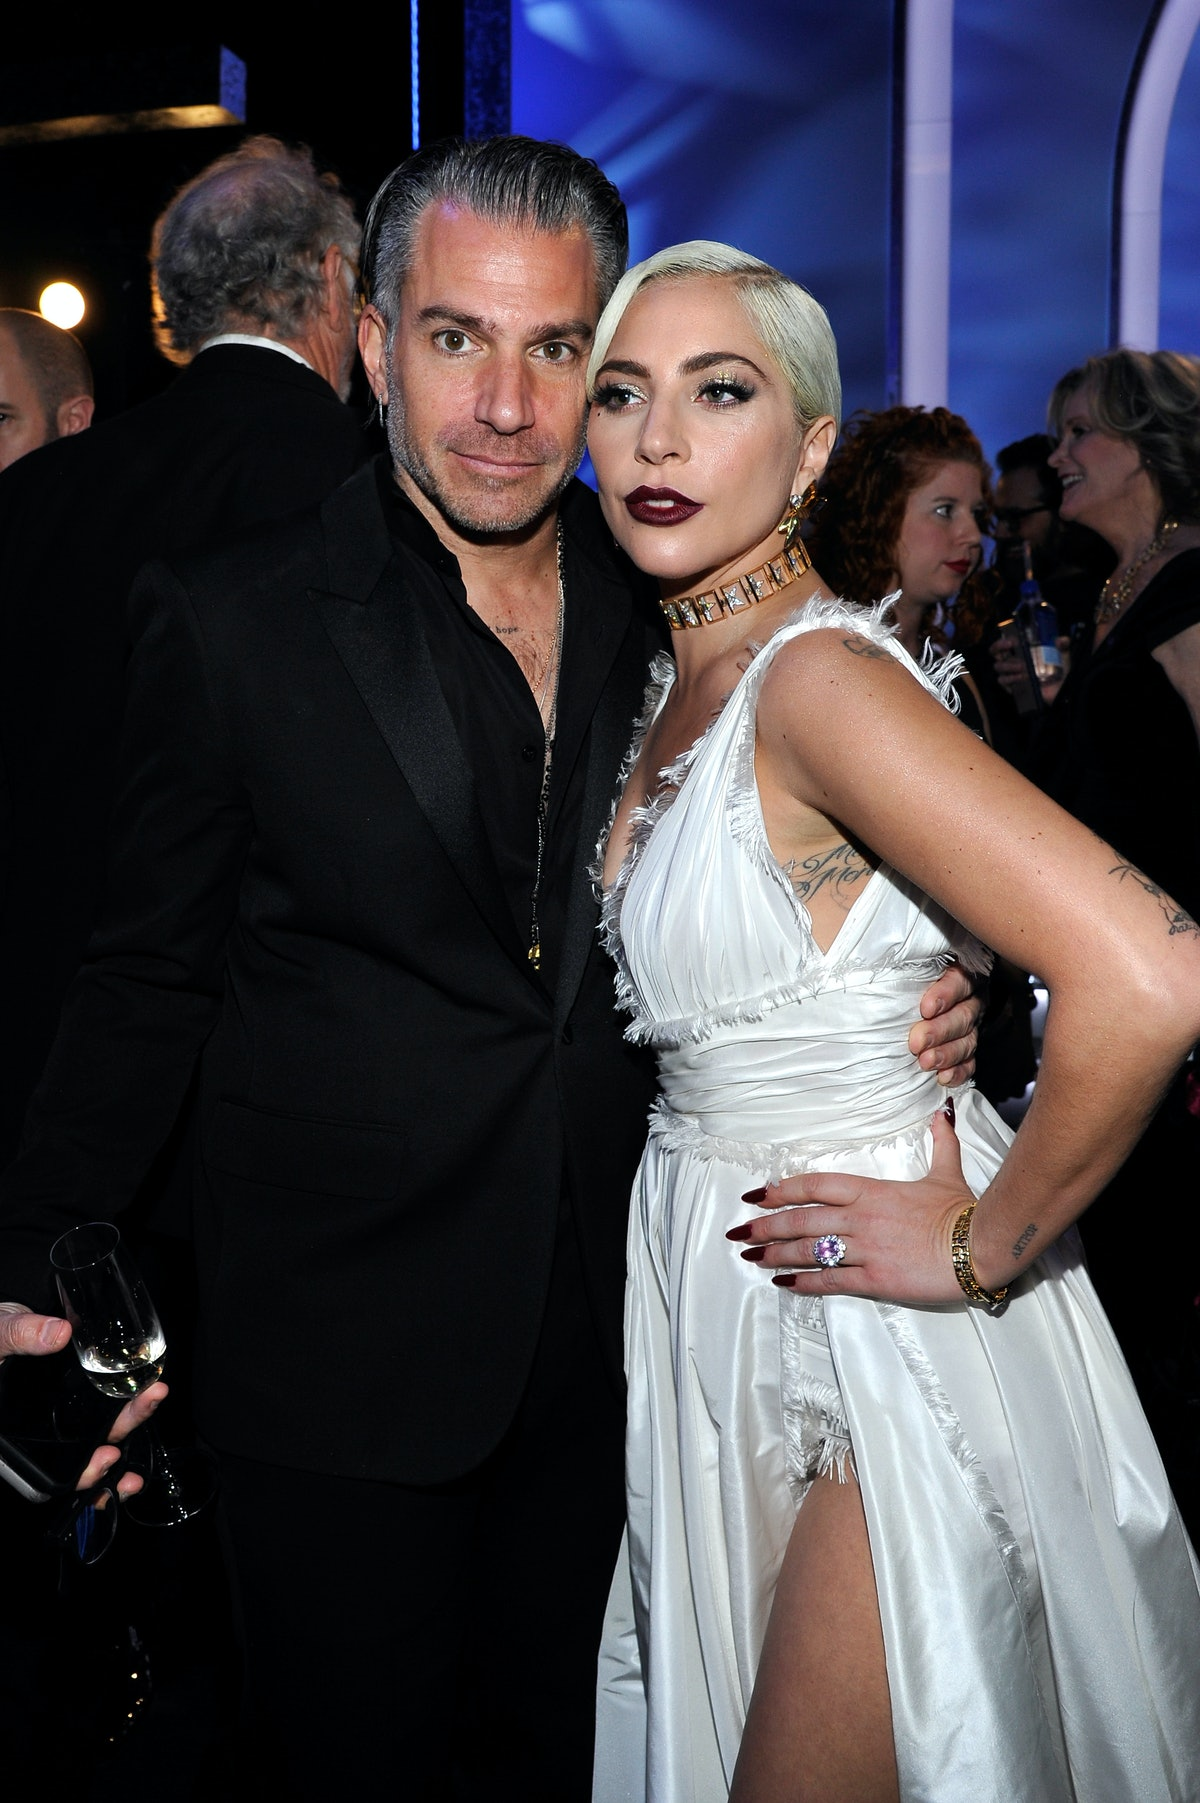 Lady Gaga & Christian Carino Called Off Their Engagement, According To A New Report